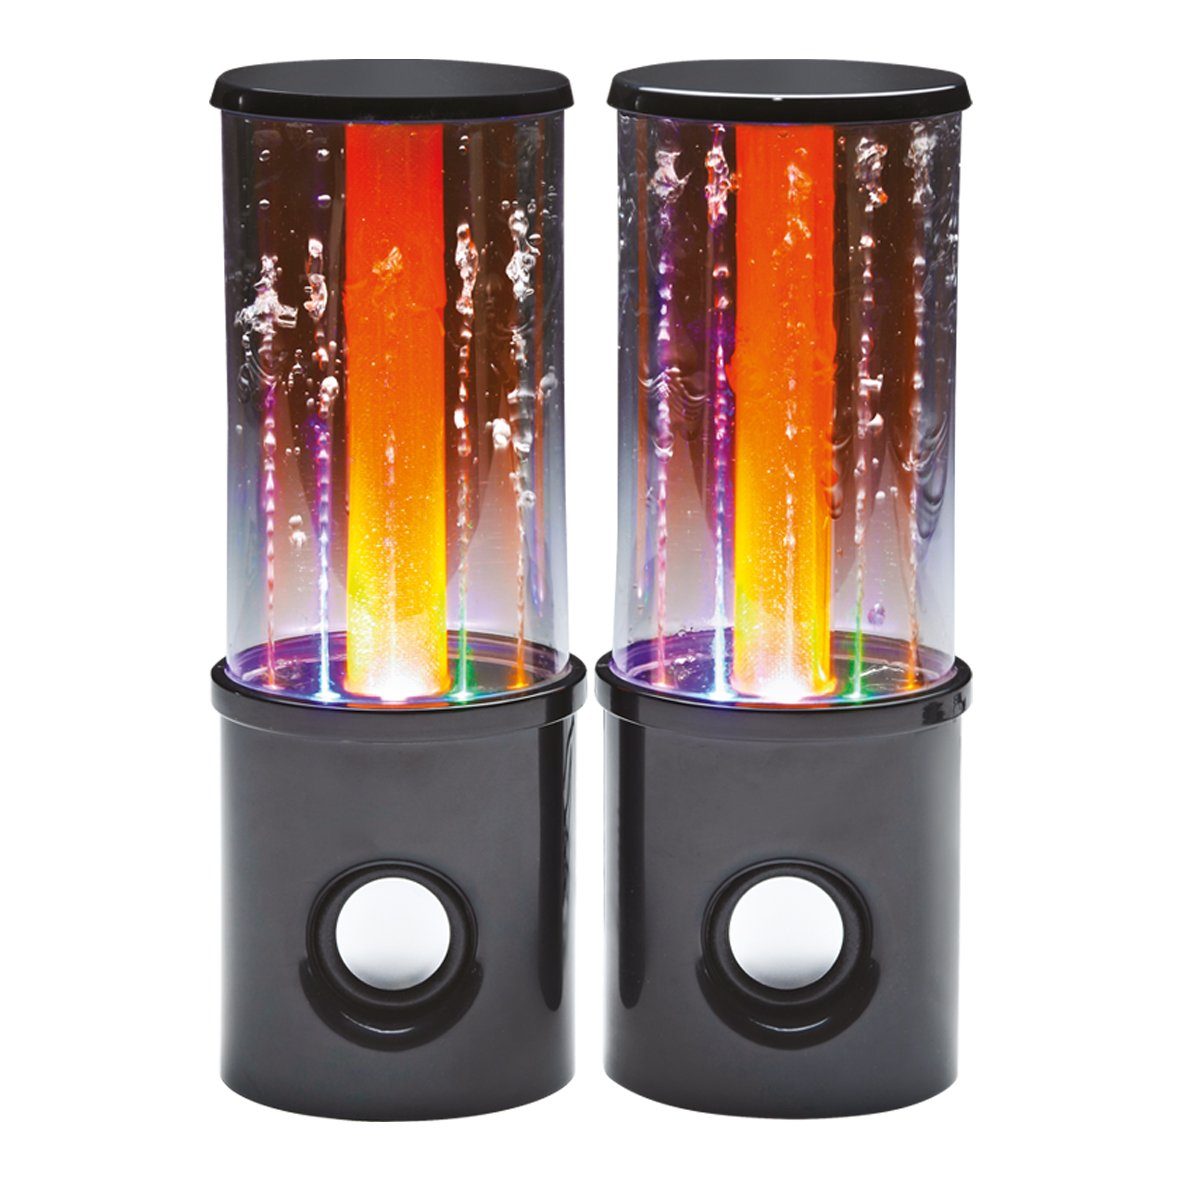 Juego de 2 Altavoces USB Global Gizmos 54610 Benross